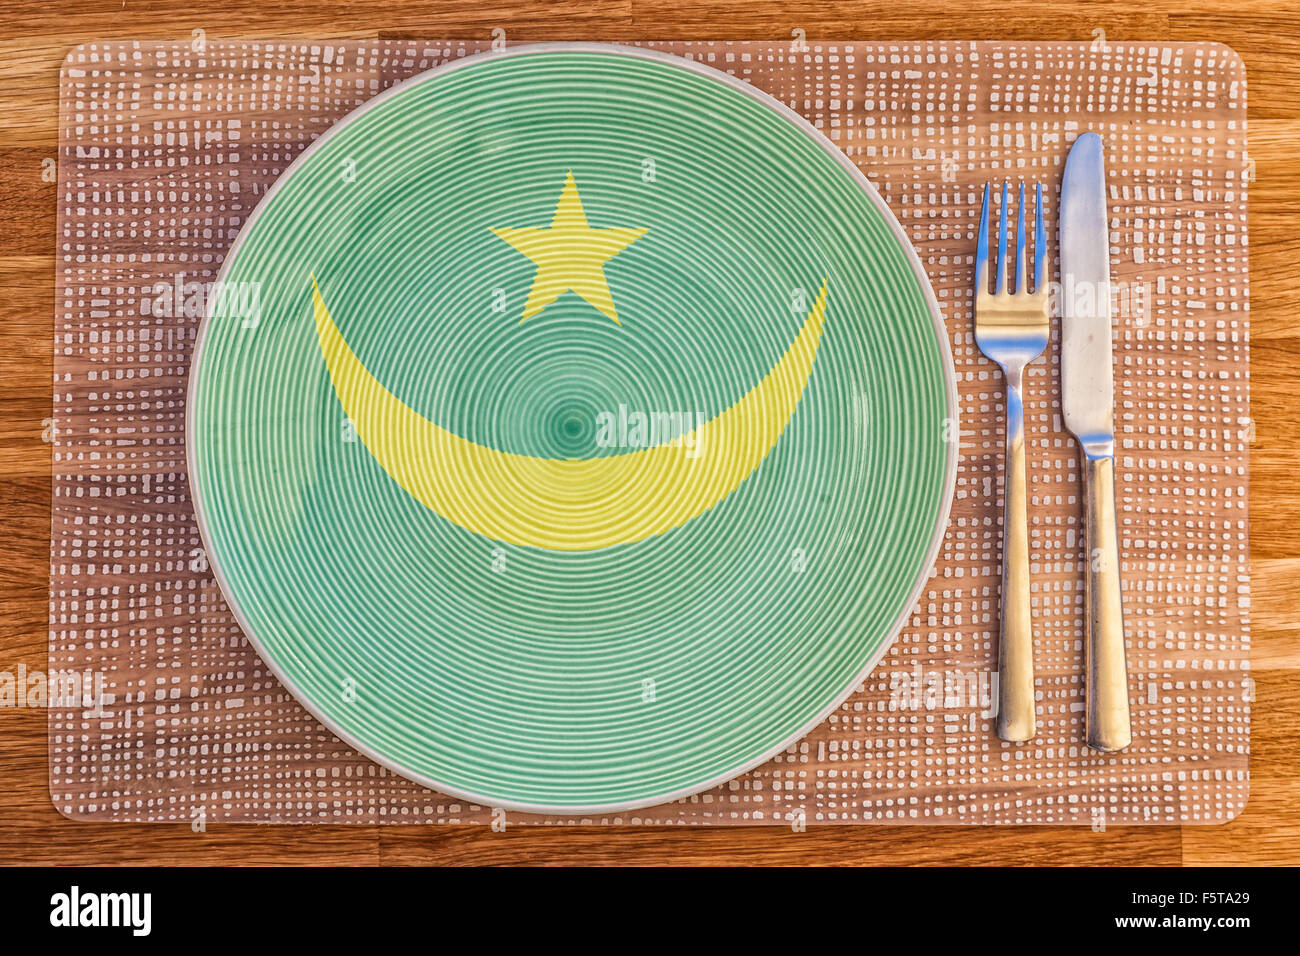 Dinner plate with the flag of Mauritania on it for your international food and drink concepts. - Stock Image